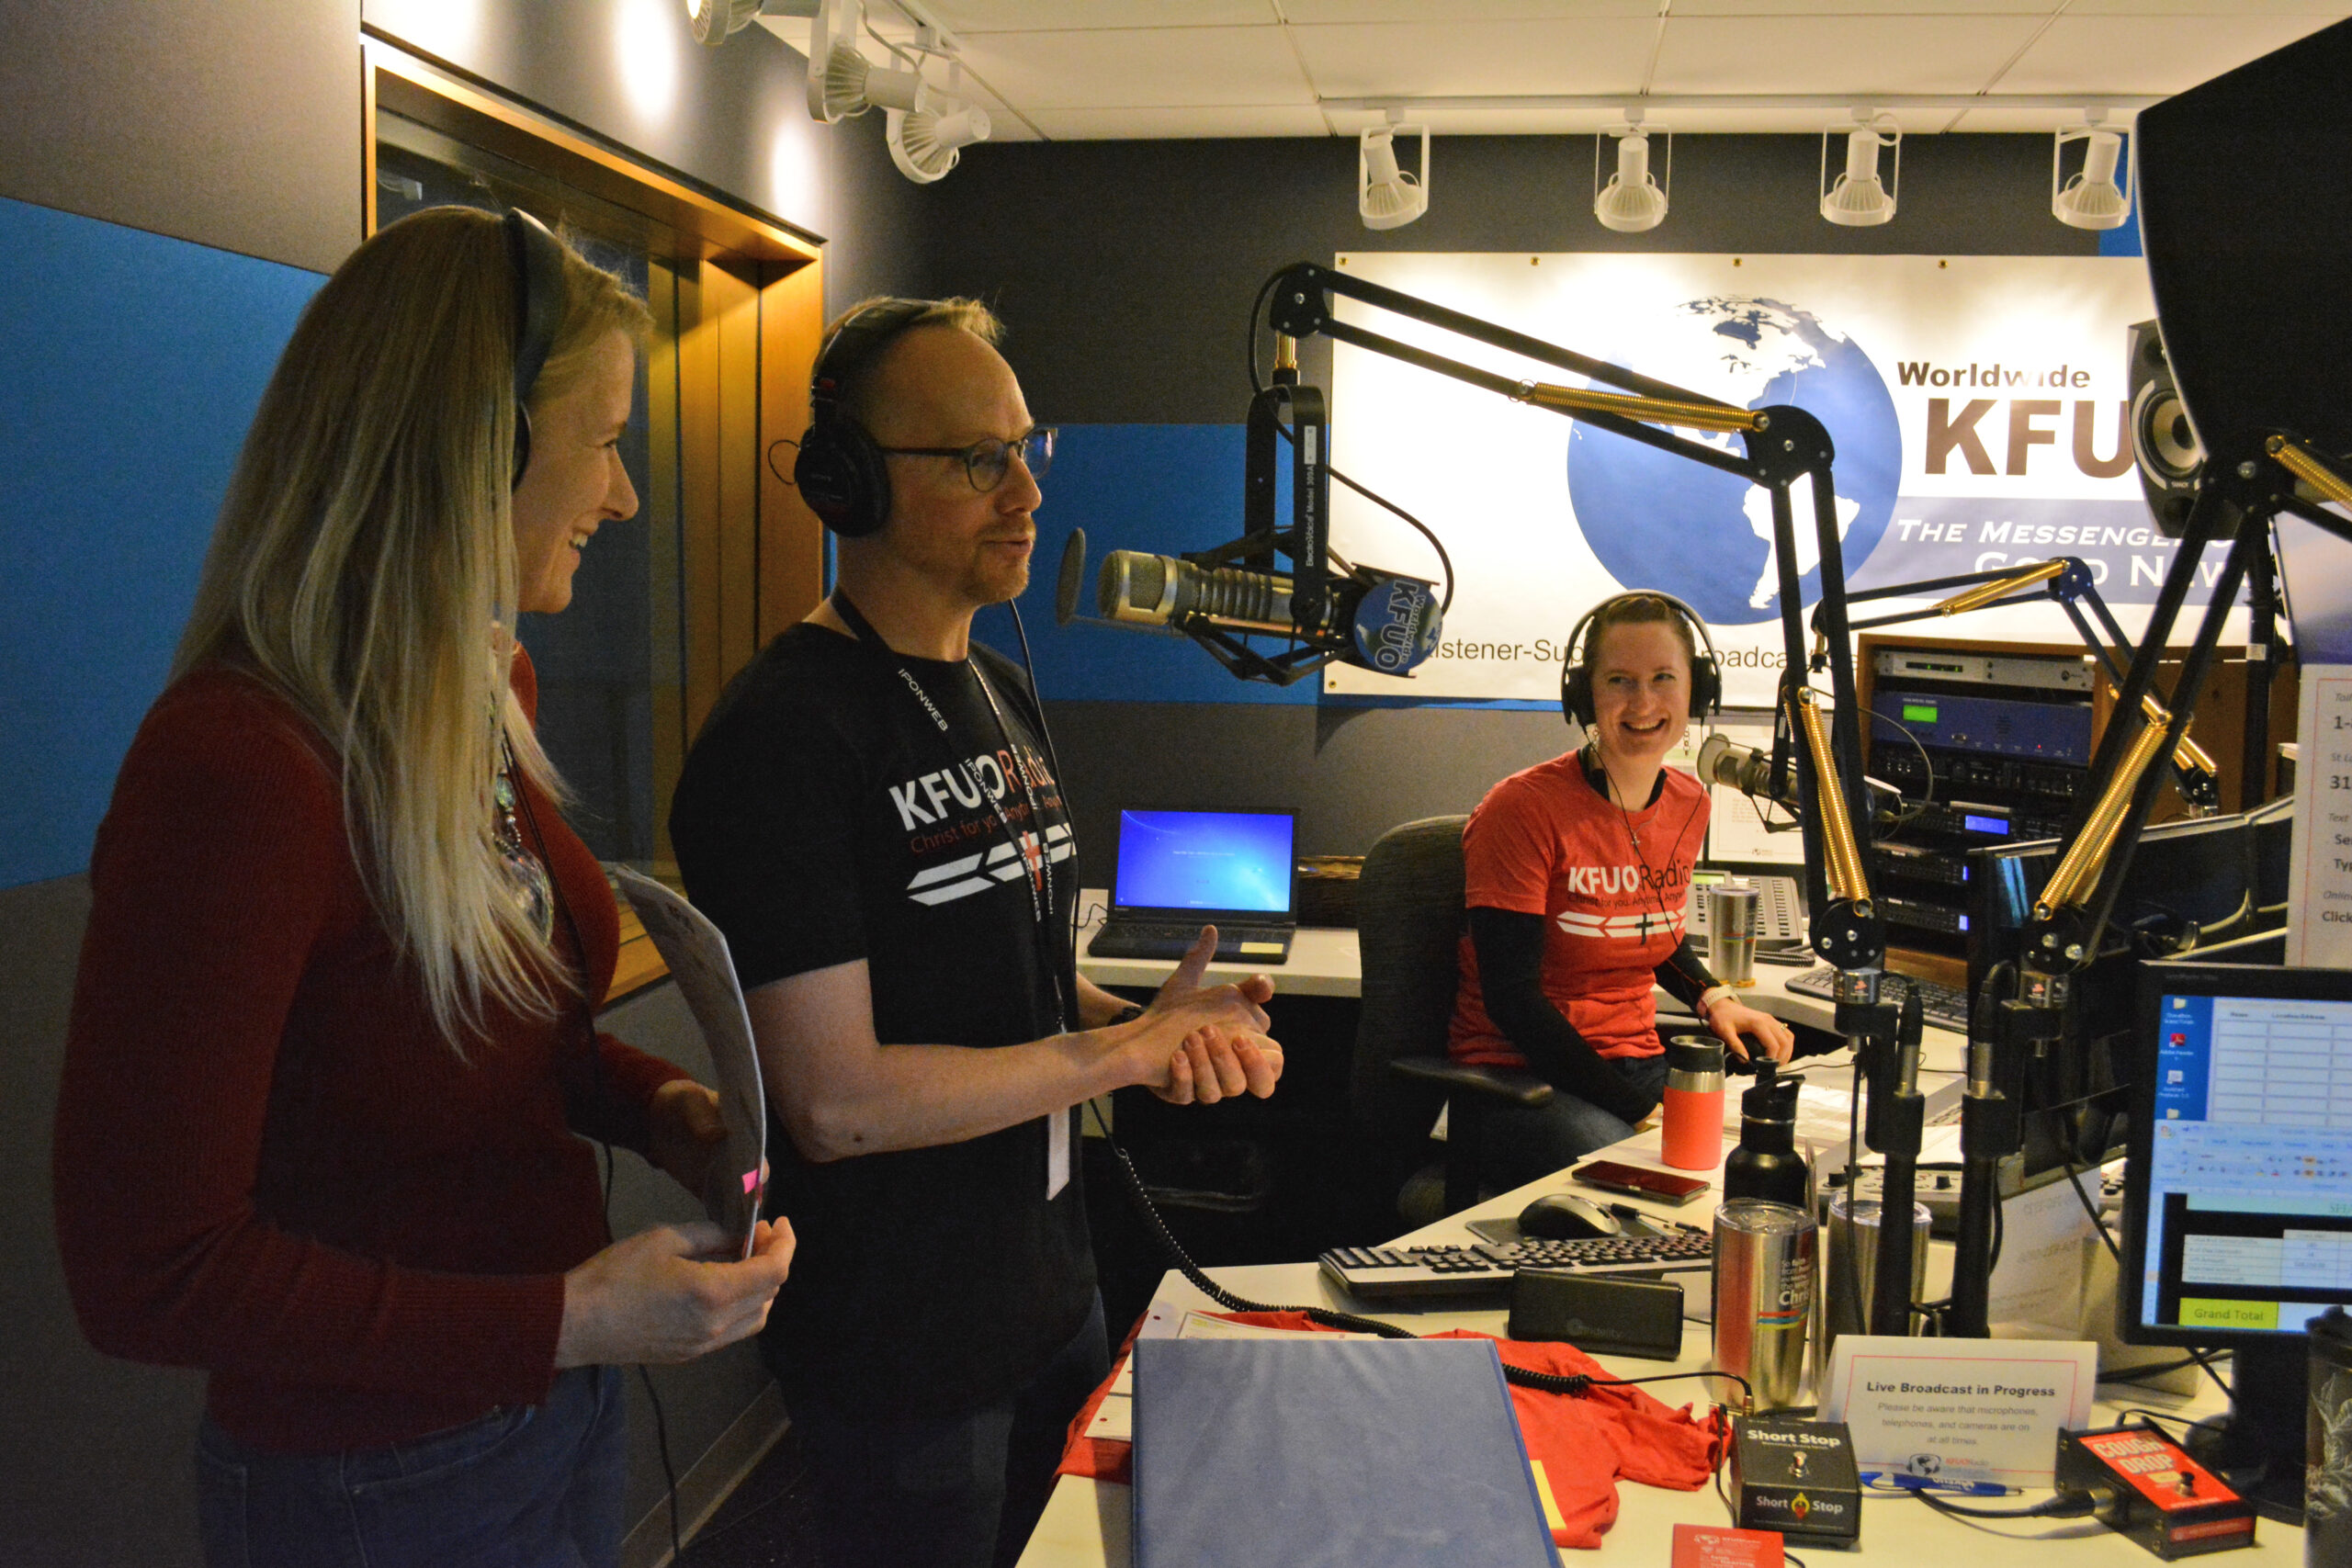 Mary Schmidt, Andy Bates, and Sarah Gulseth engage listeners during Sharathon 2018.